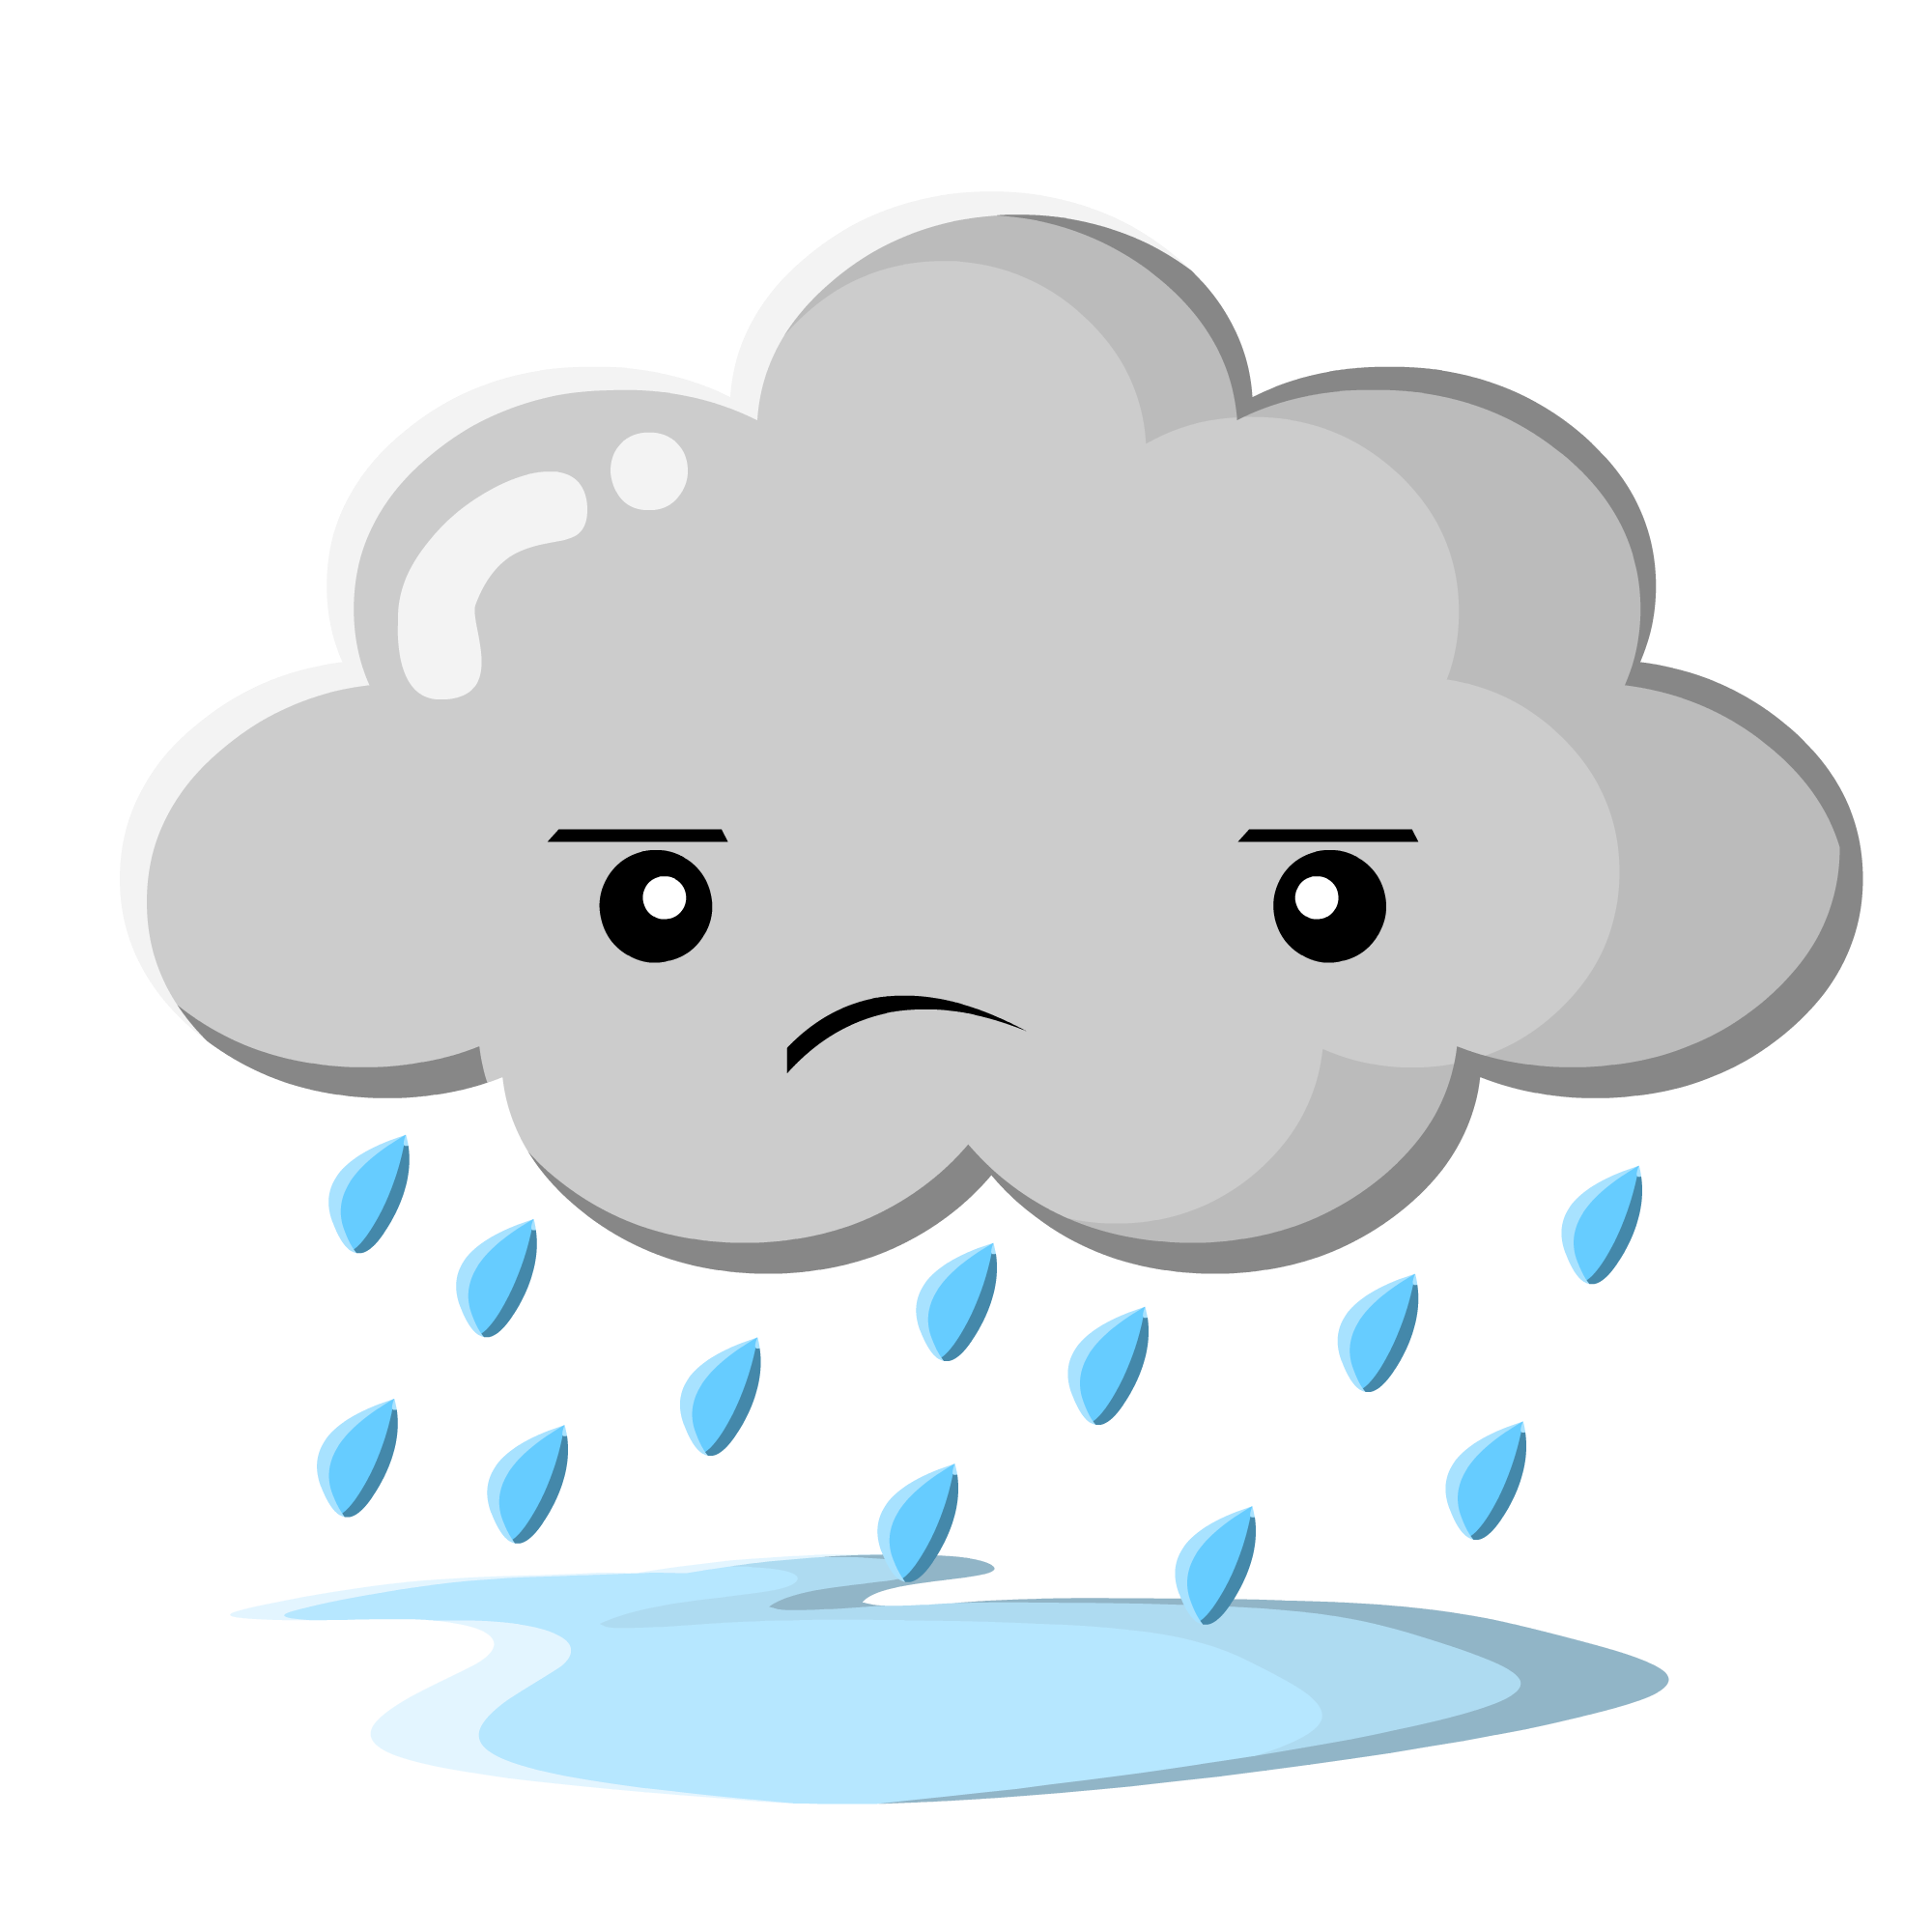 Cartoon raining money clipart graphic transparent Tropical Storm Watch? Hurricane Warning? What's the Difference ... graphic transparent